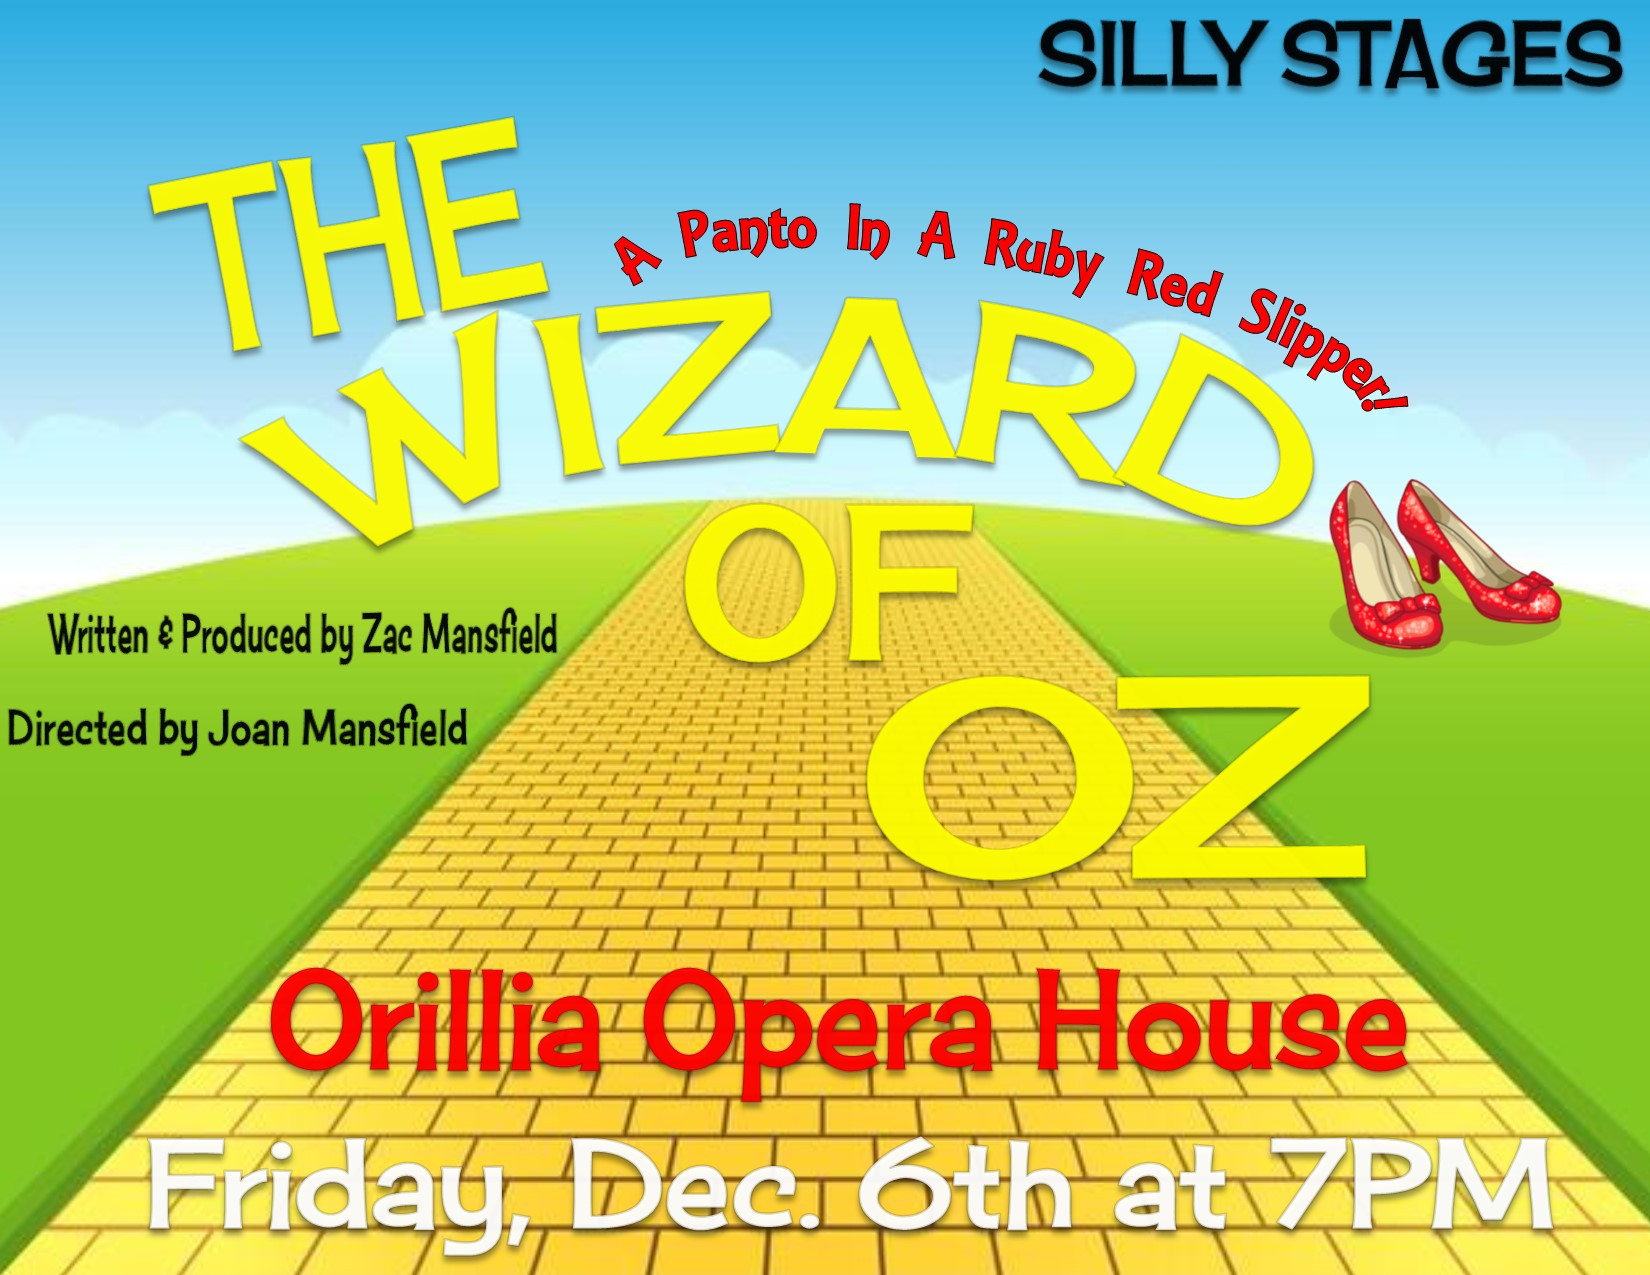 Wizard Of Oz jpeg - WIZARD OF OZ-PANTO IN A RUBY RED SLIPPER